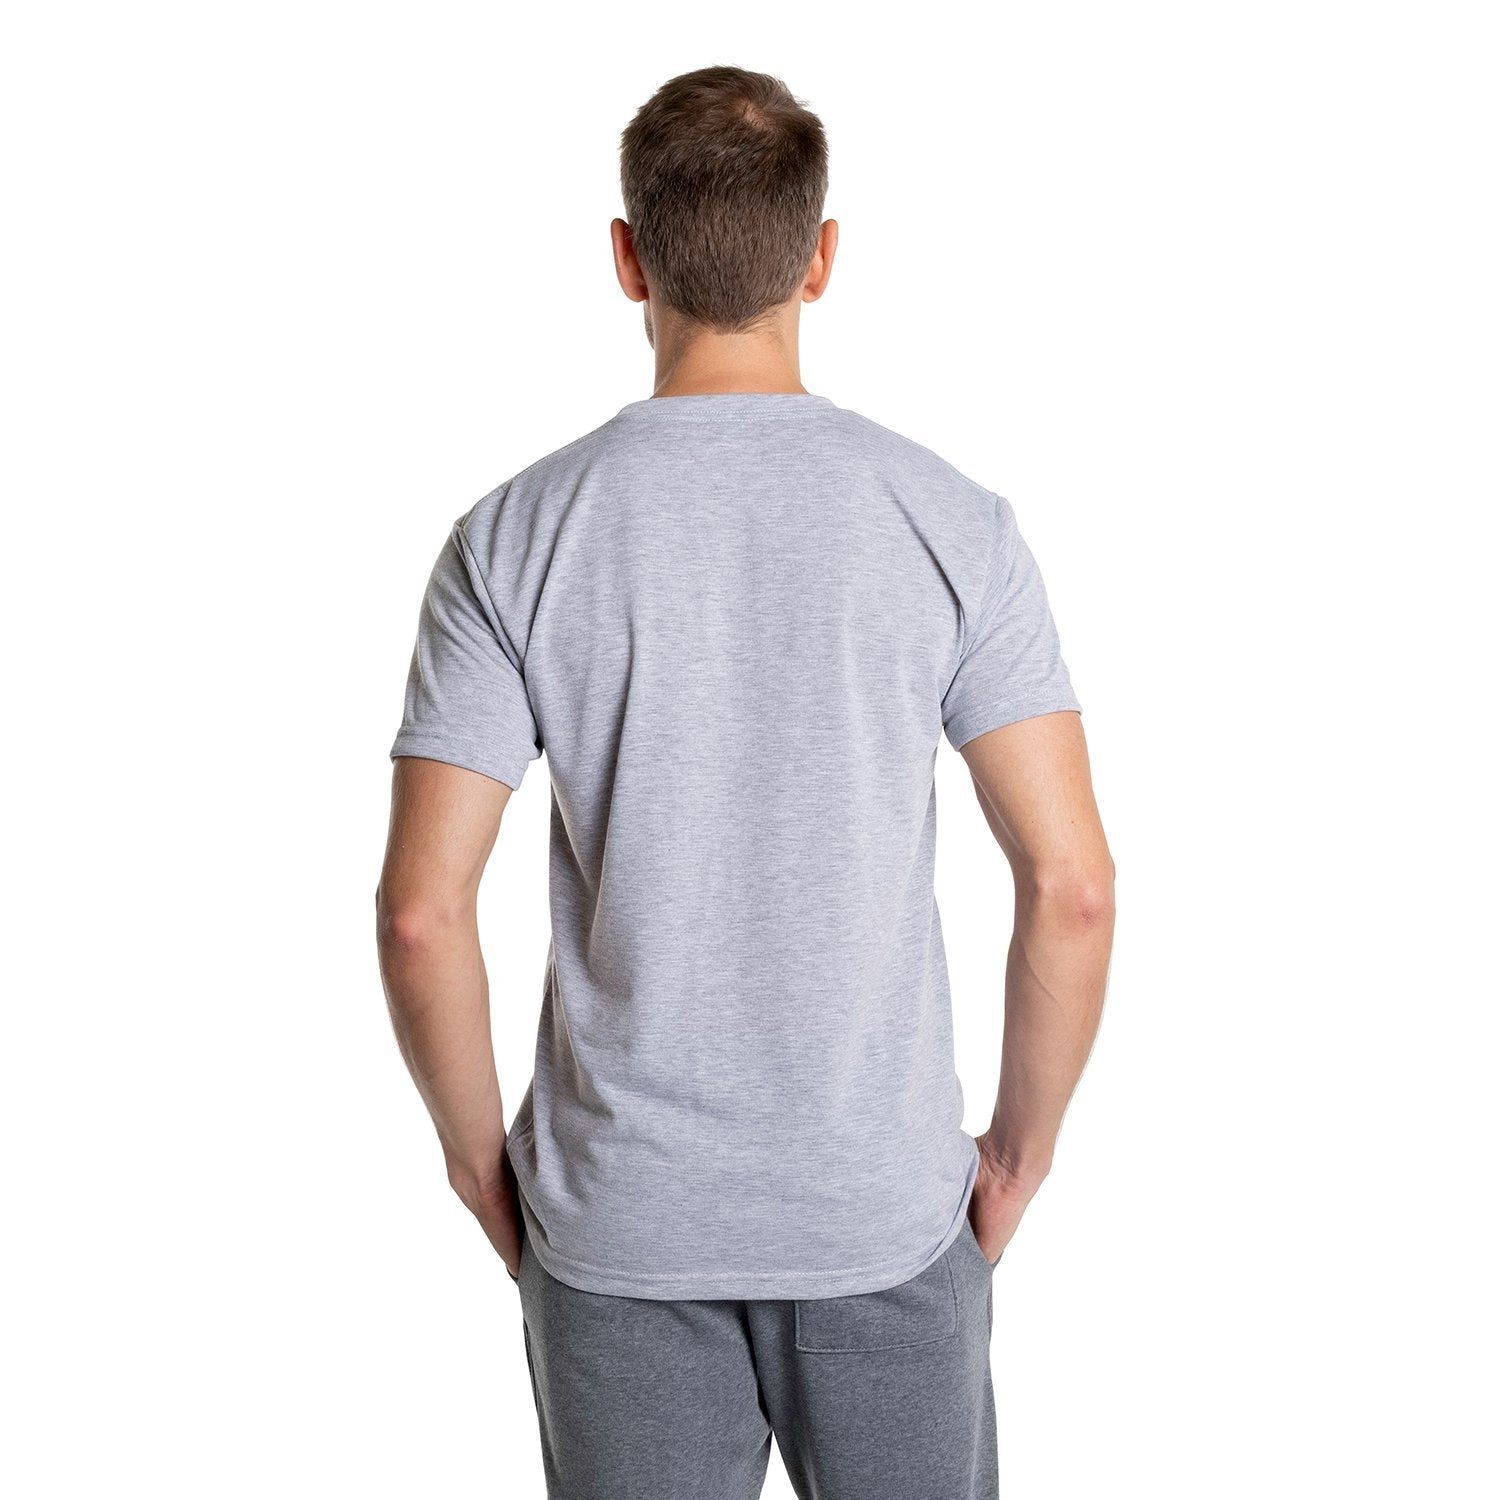 A1SJBBAH Basic Performance T-Shirt - Ash Heather